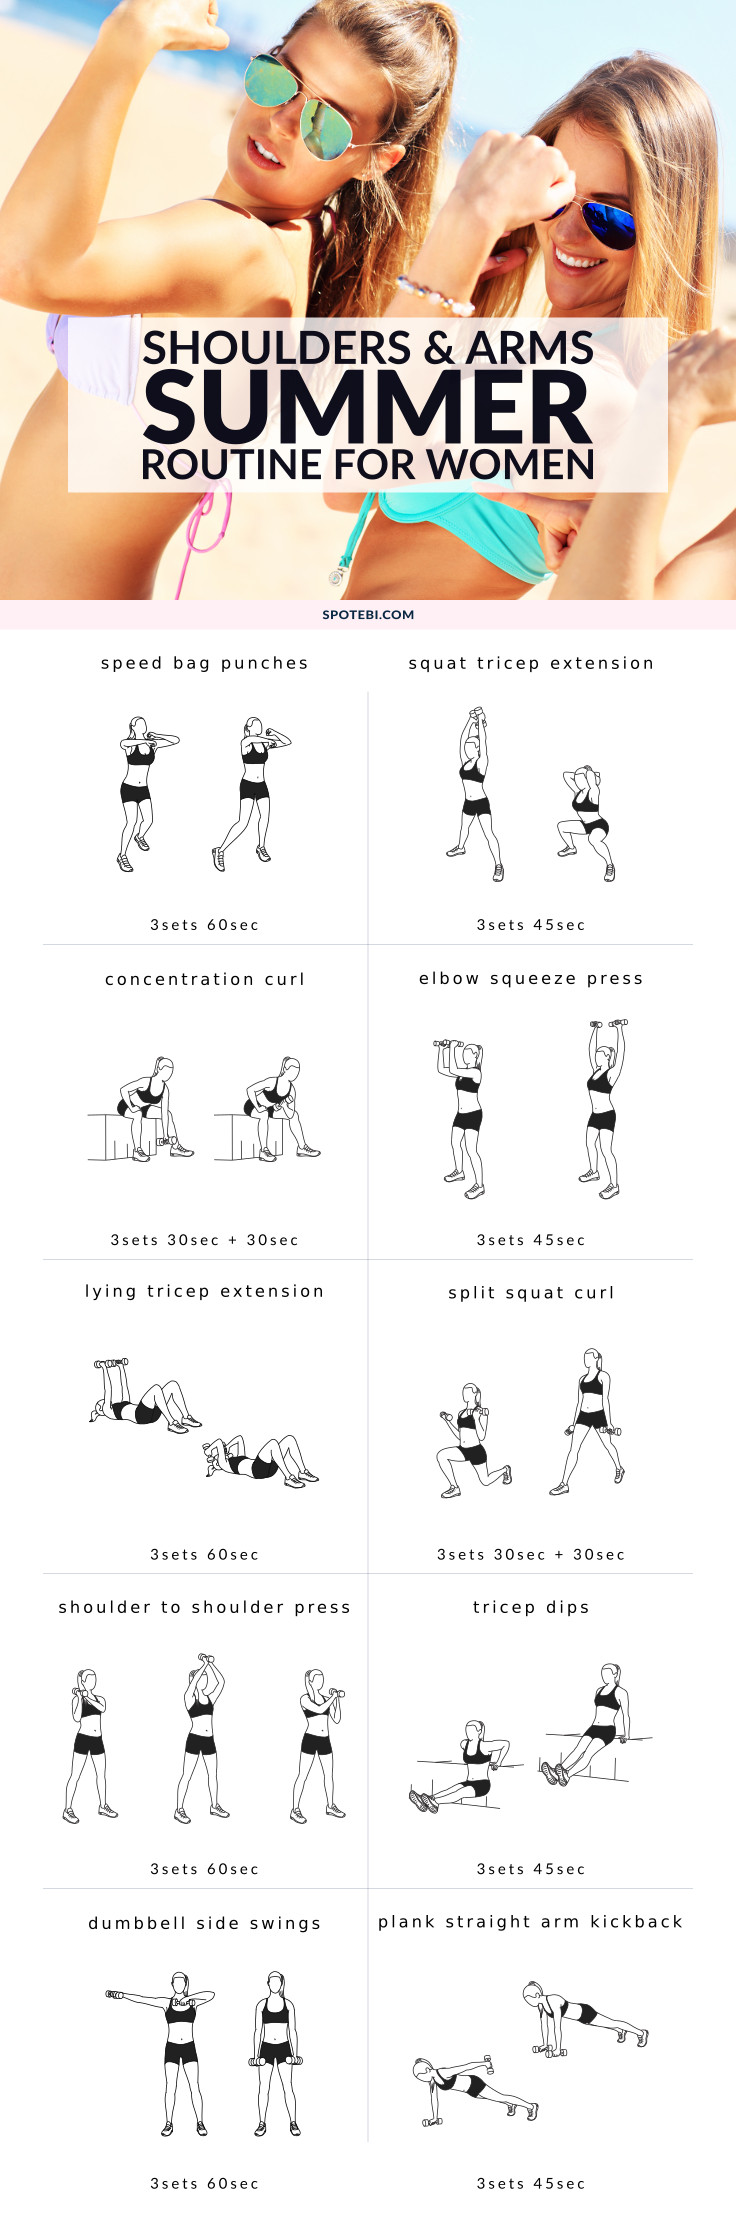 Get your upper body fit and toned for Summer with this shoulders and arms workout for women. A complete 30 minute circuit that combines cardio and strength training moves to create a well-rounded, fat-burning routine. https://www.spotebi.com/workout-routines/shoulders-arms-workout-for-women/